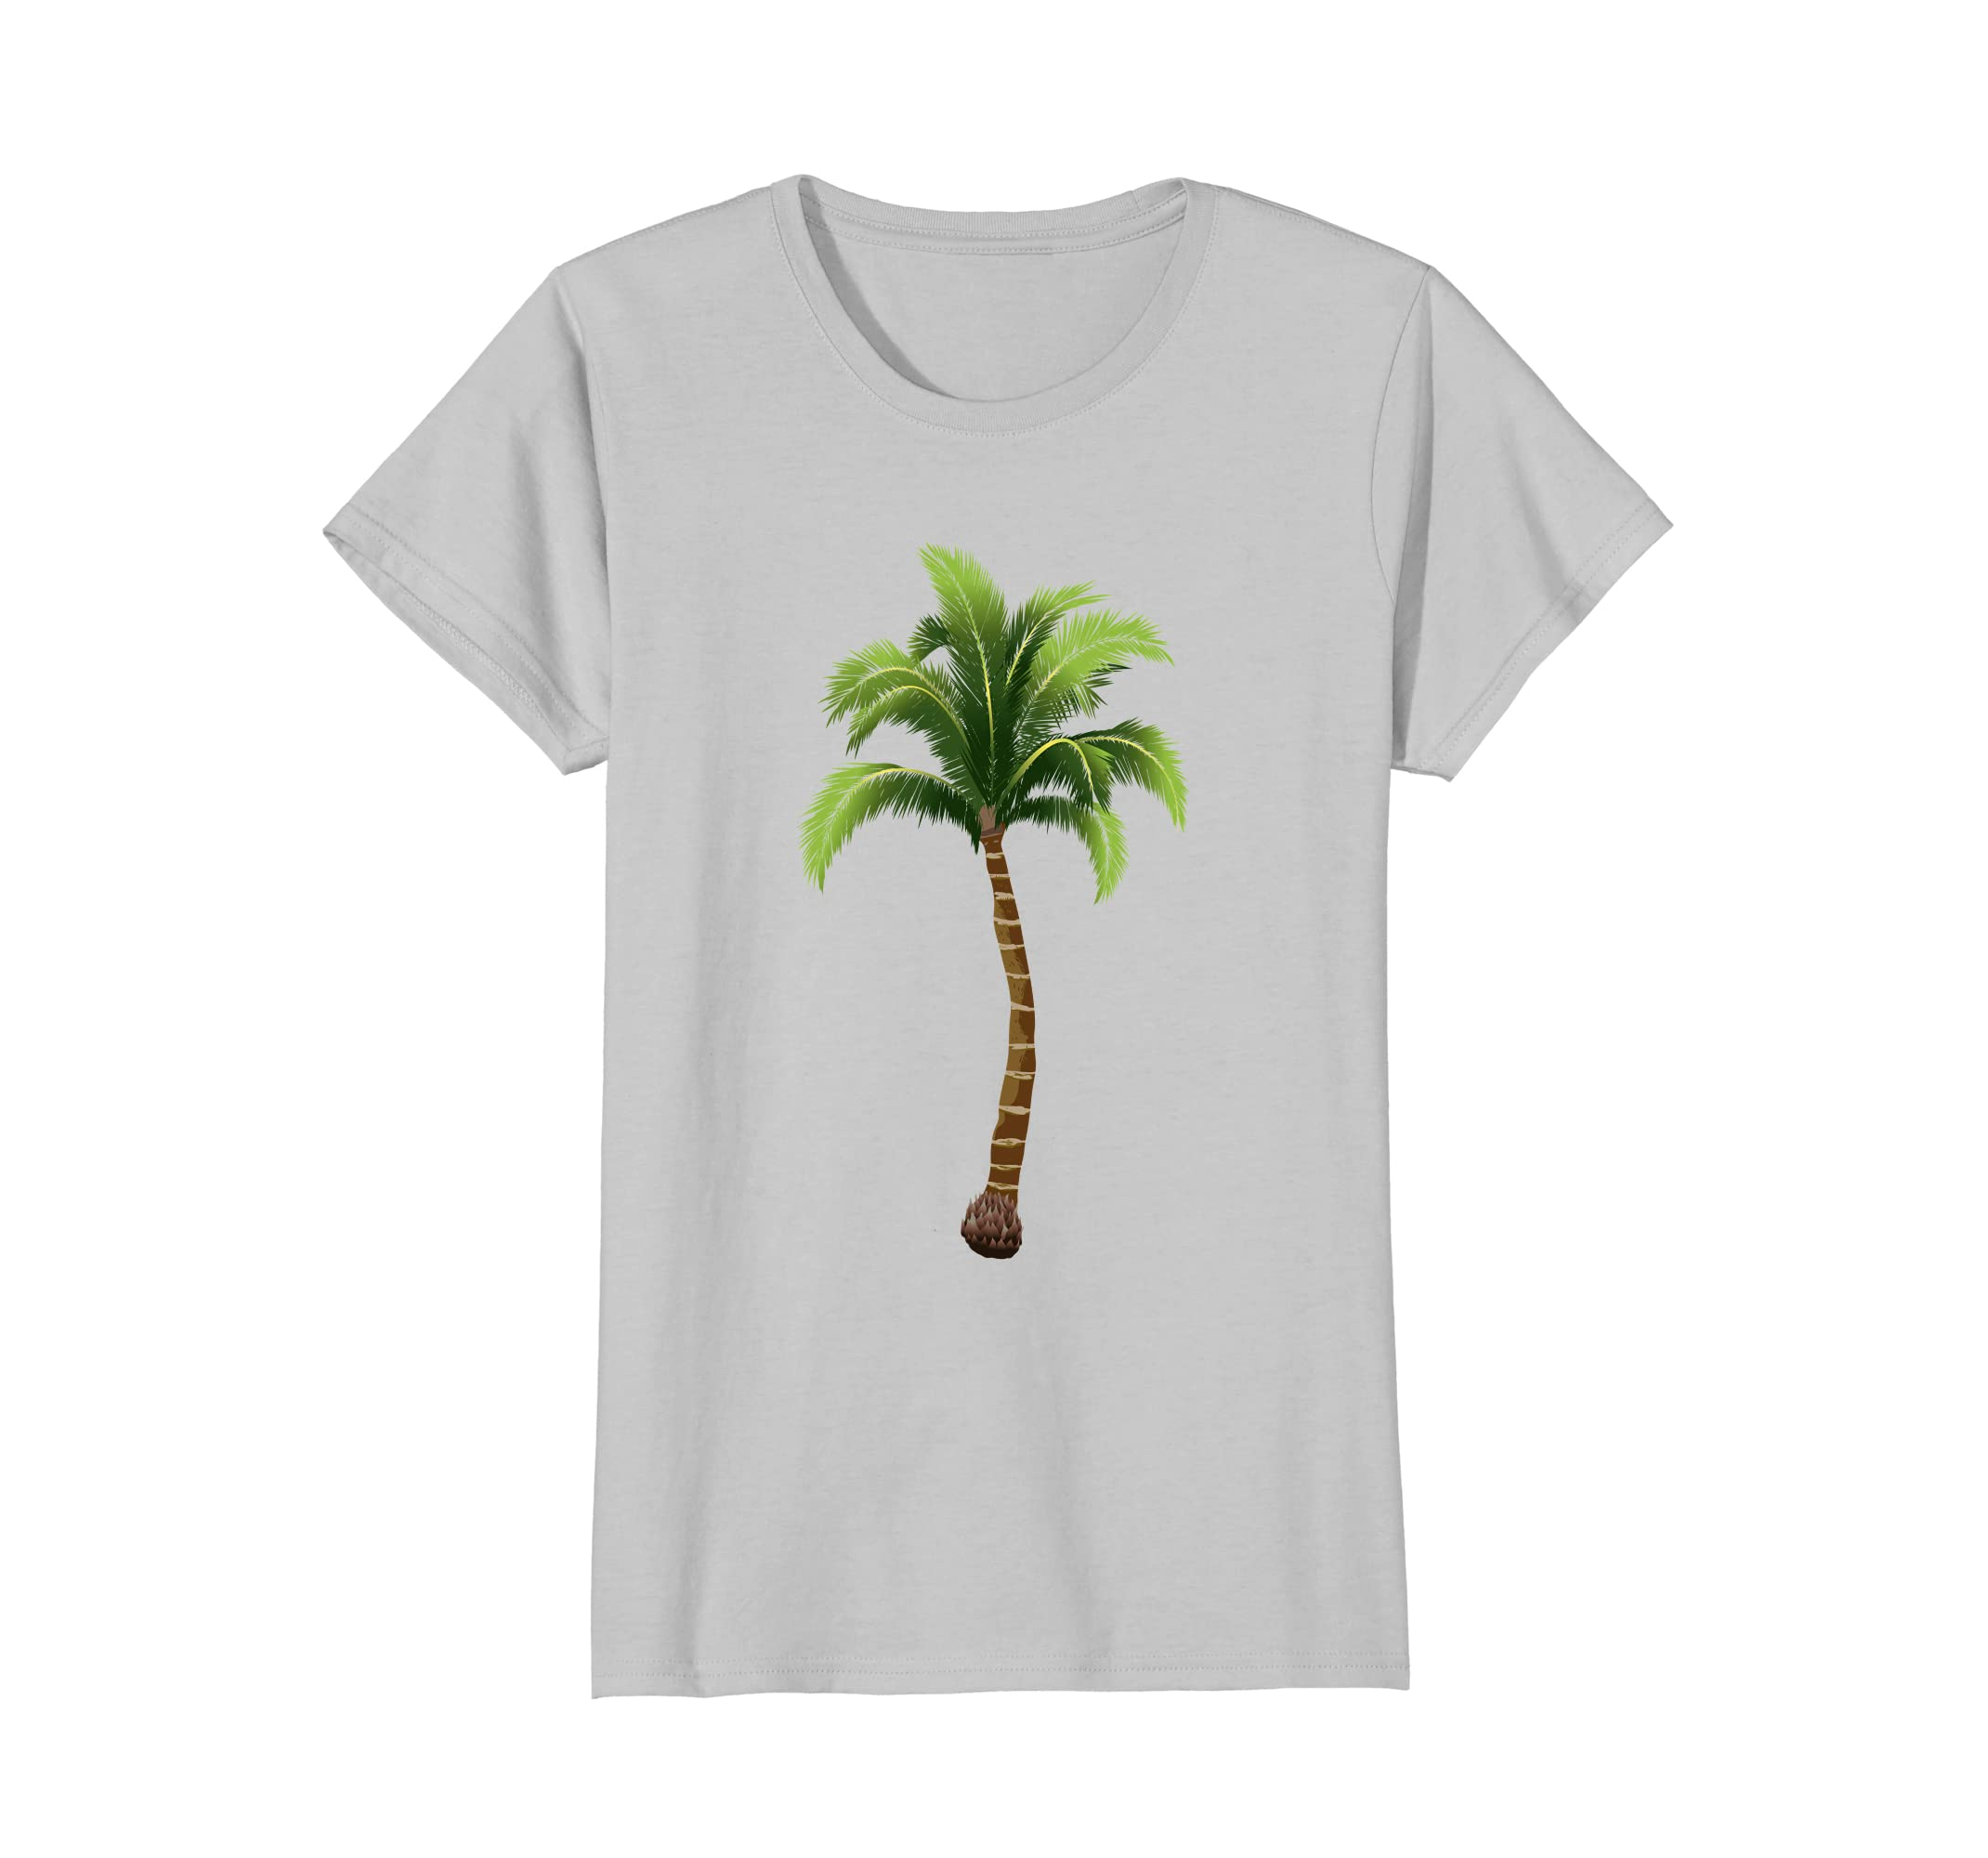 b02a7382c5 Amazon.com: Palm Tree T Shirt for Girls for Fun on the Beach or ...